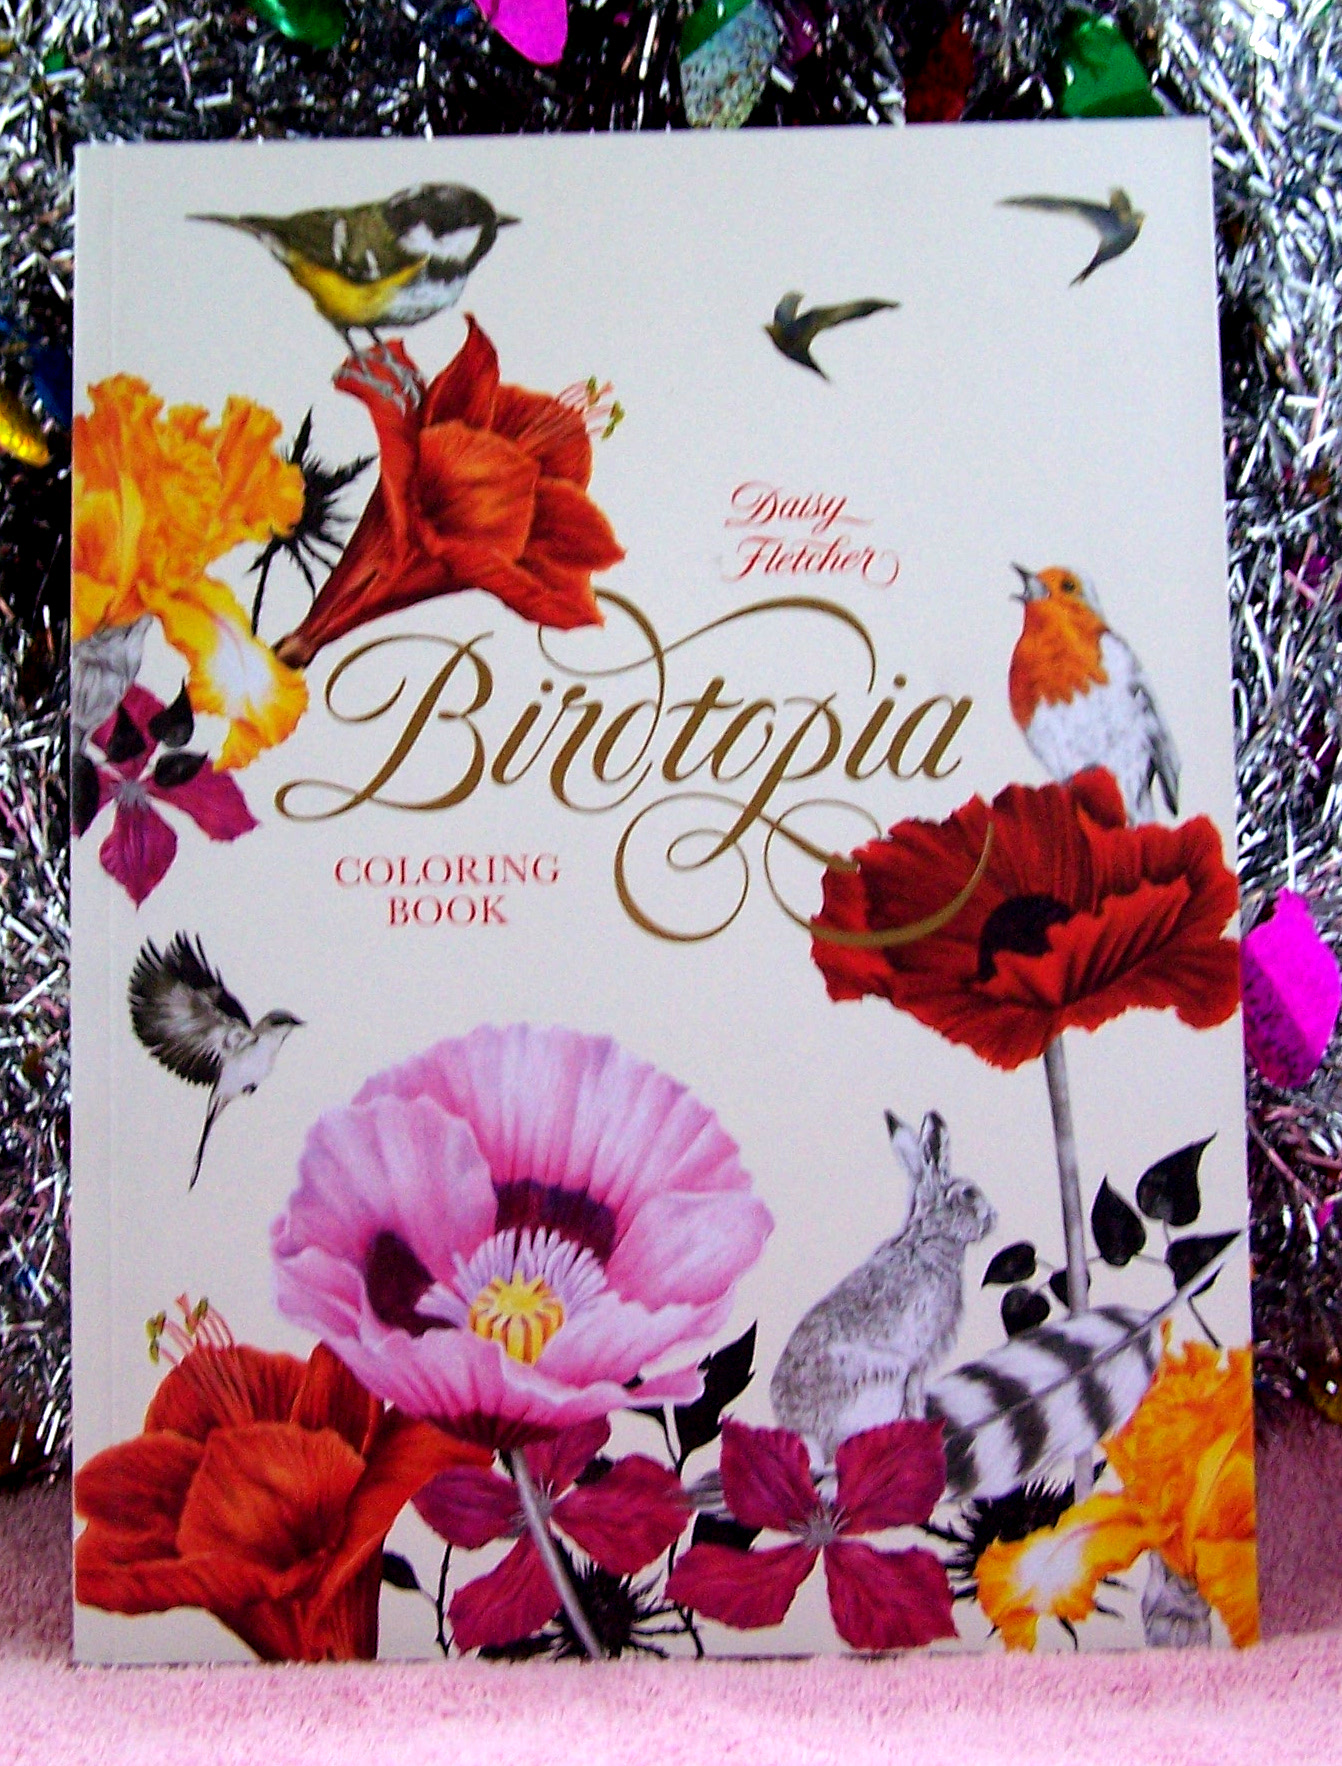 Birdtopia: Coloring Book: Holiday Gift Guide Giveaway! Ends 12/26